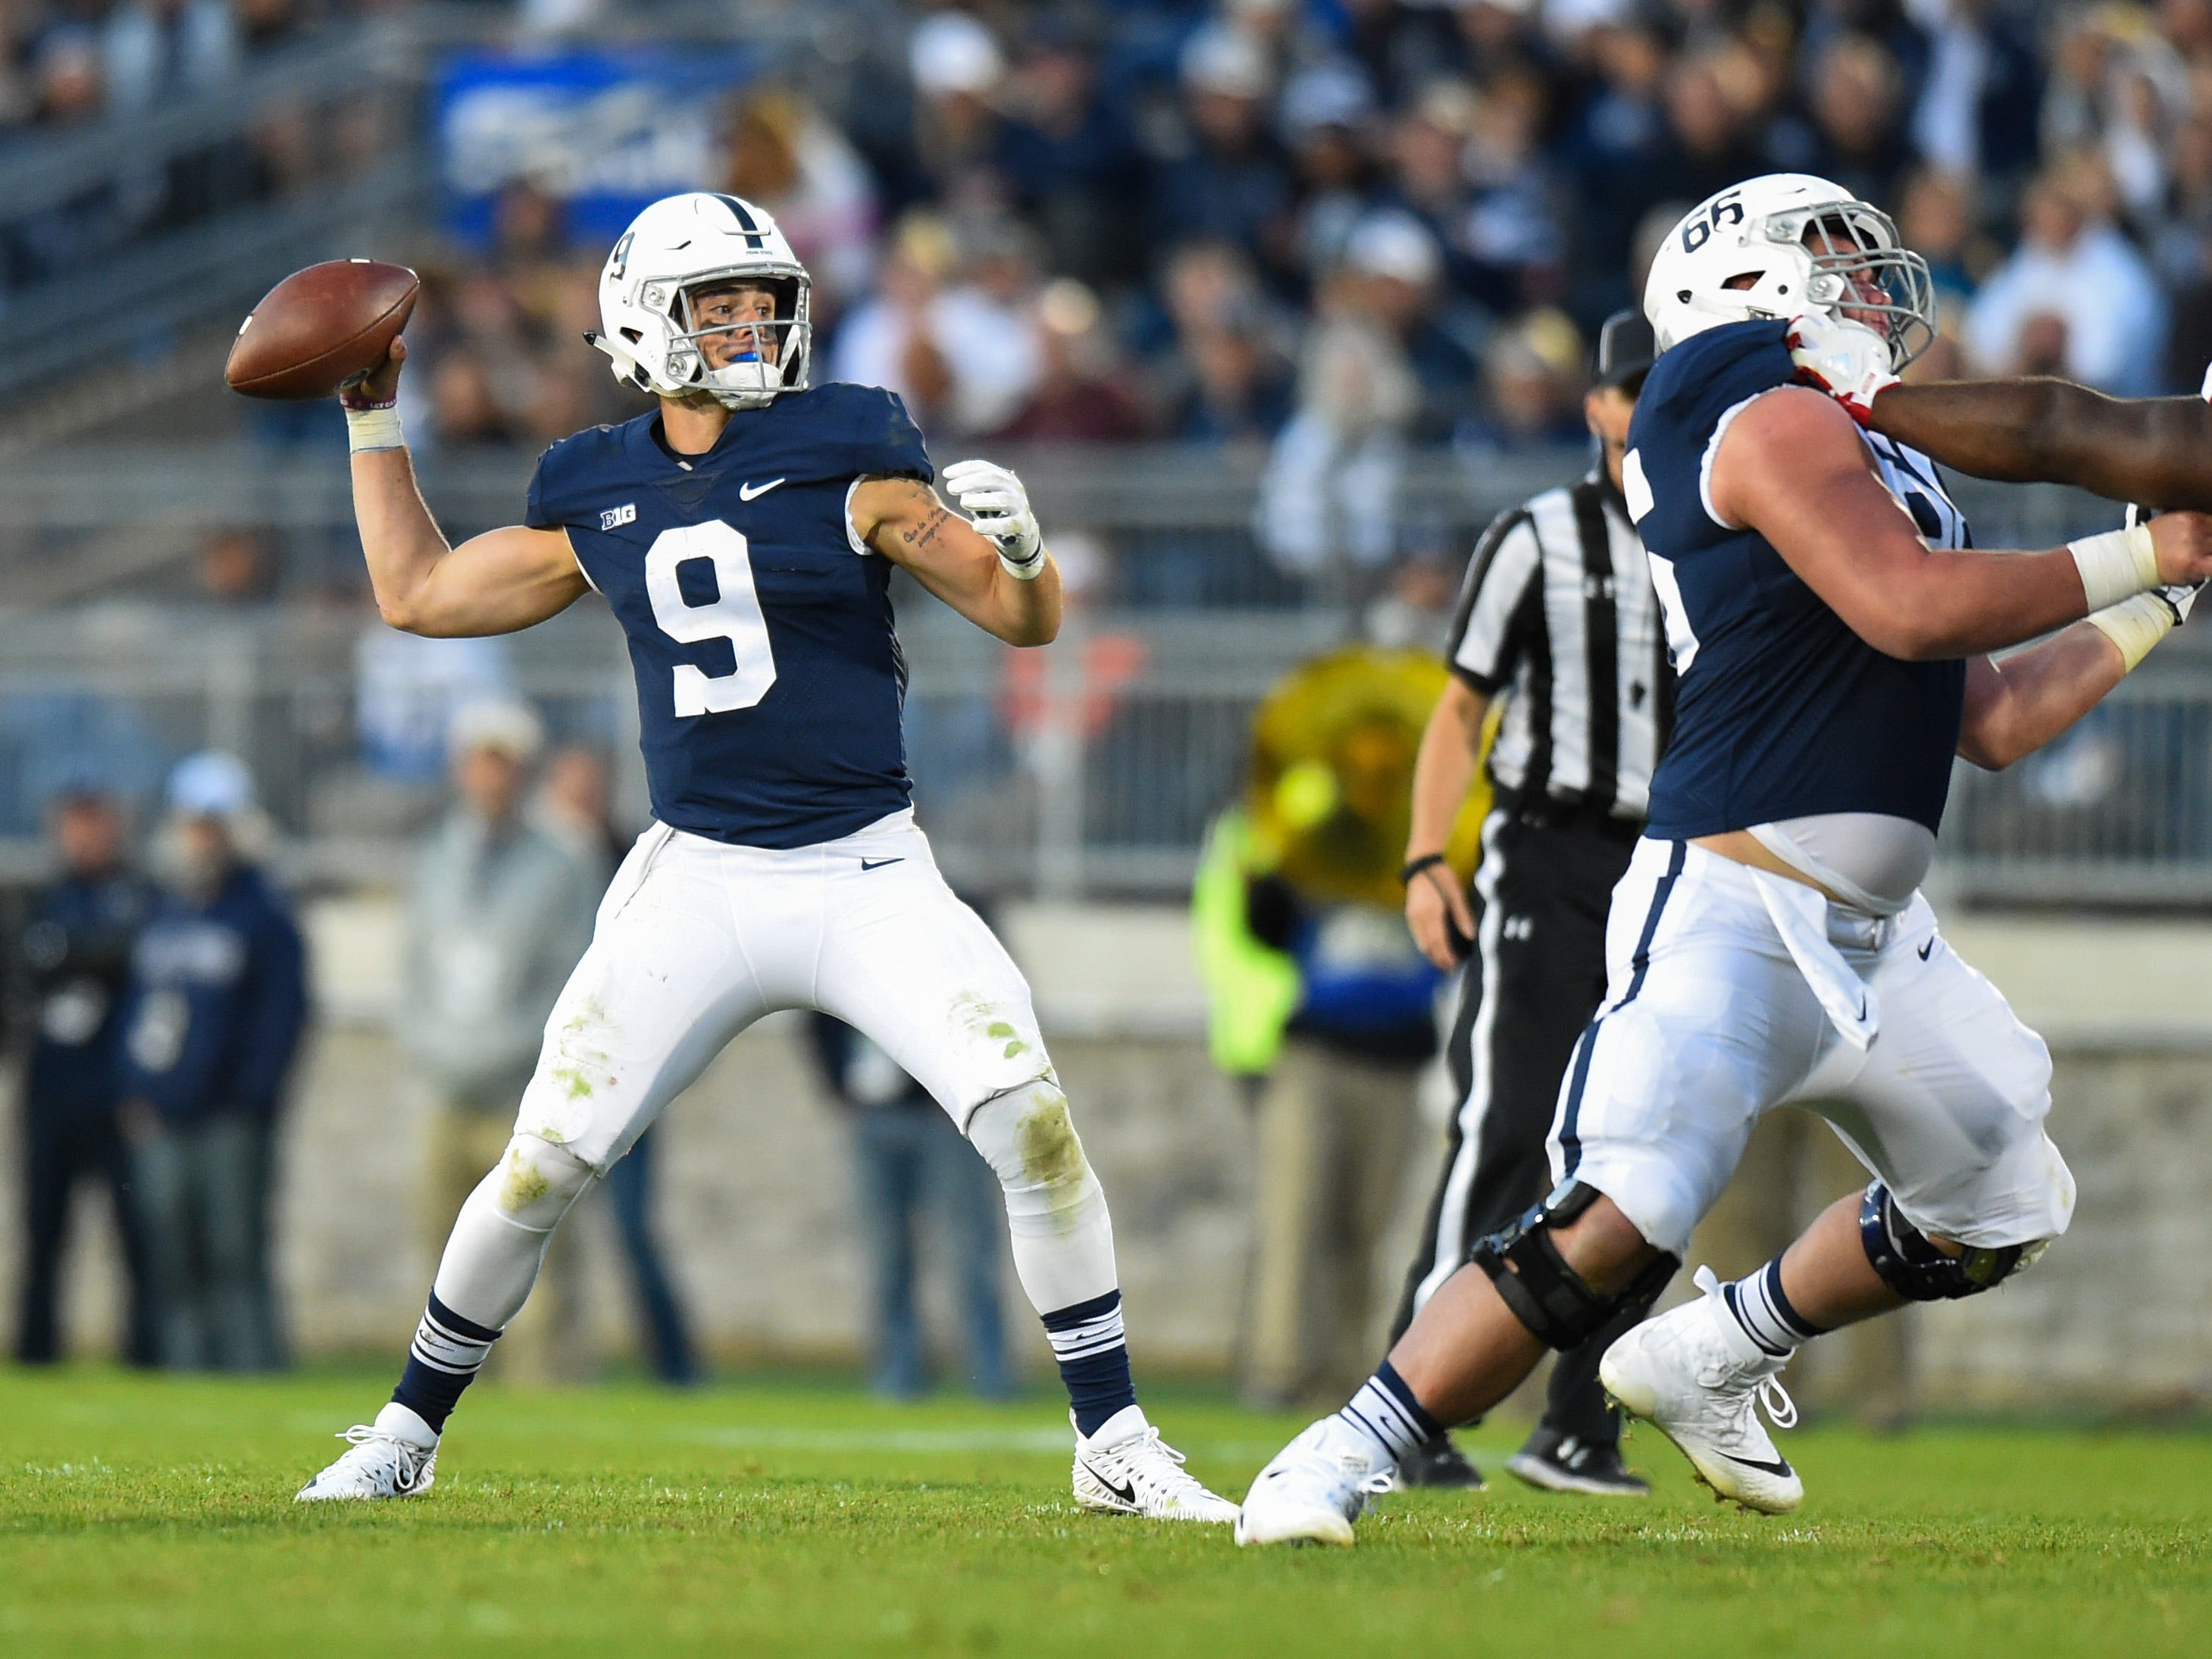 No. 9 Penn State Nittany Lions (11-2 in 2017).